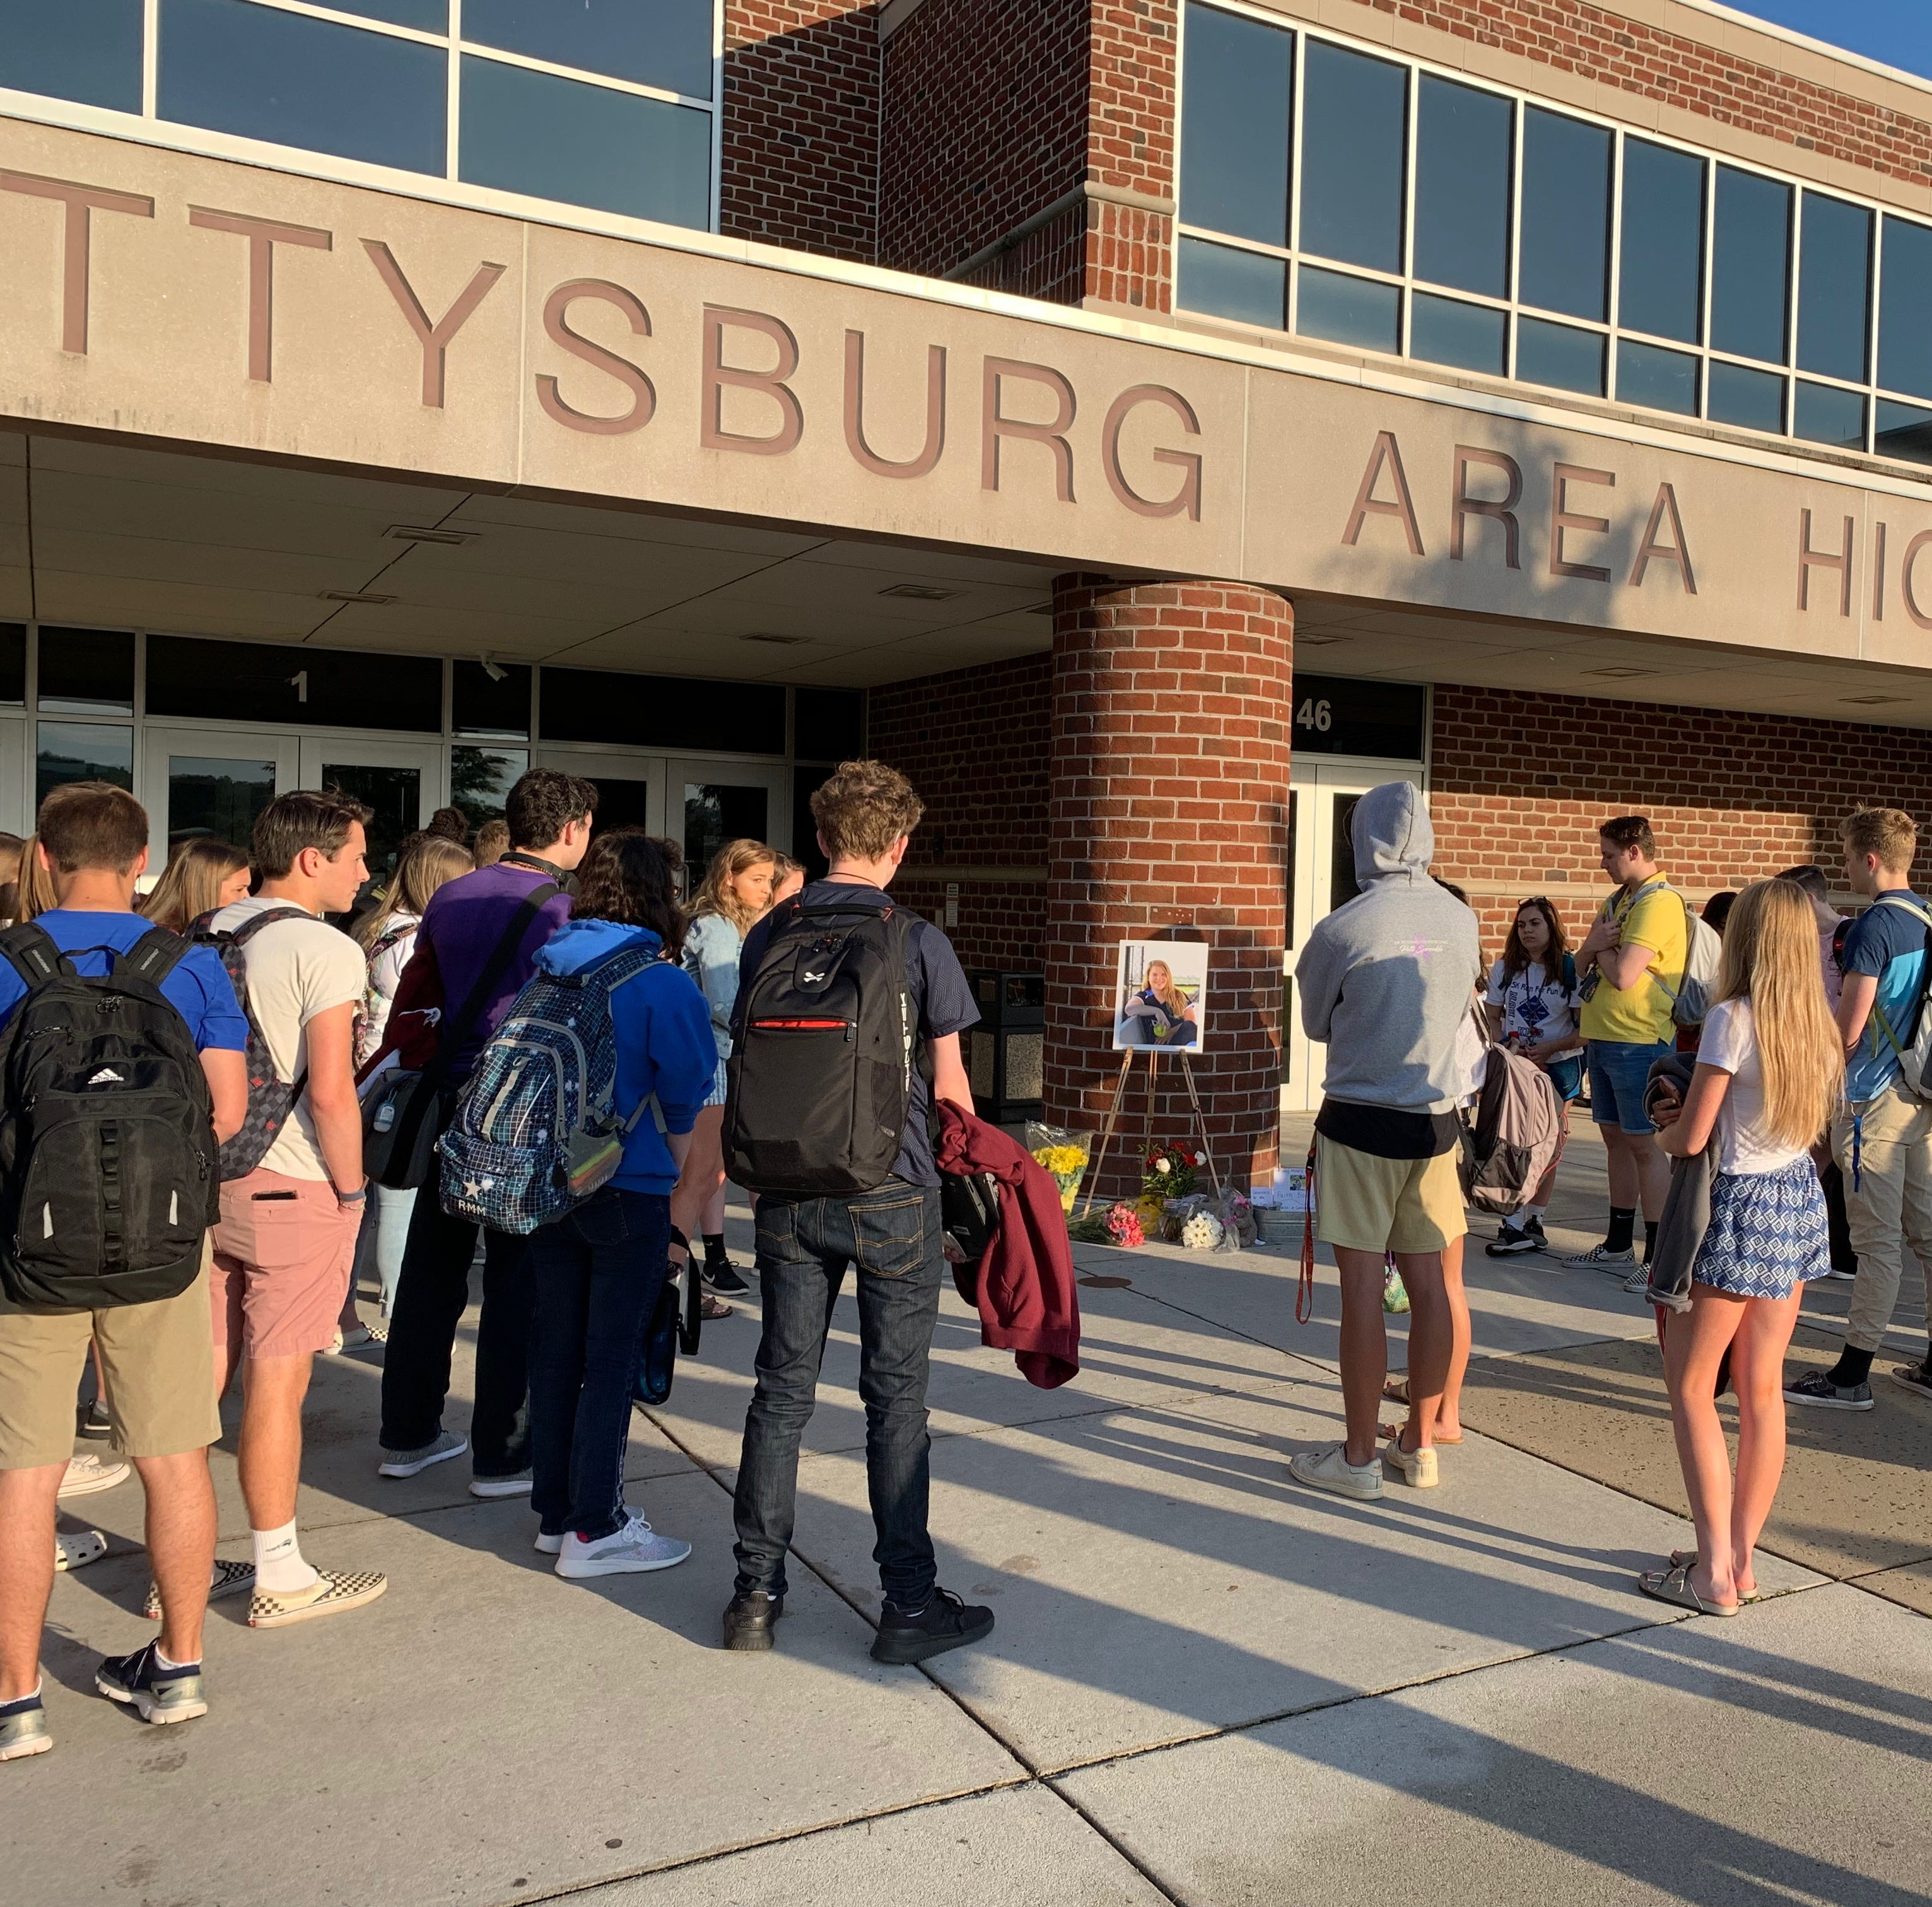 Gettysburg Area High School students pay tribute to classmate killed in car crash